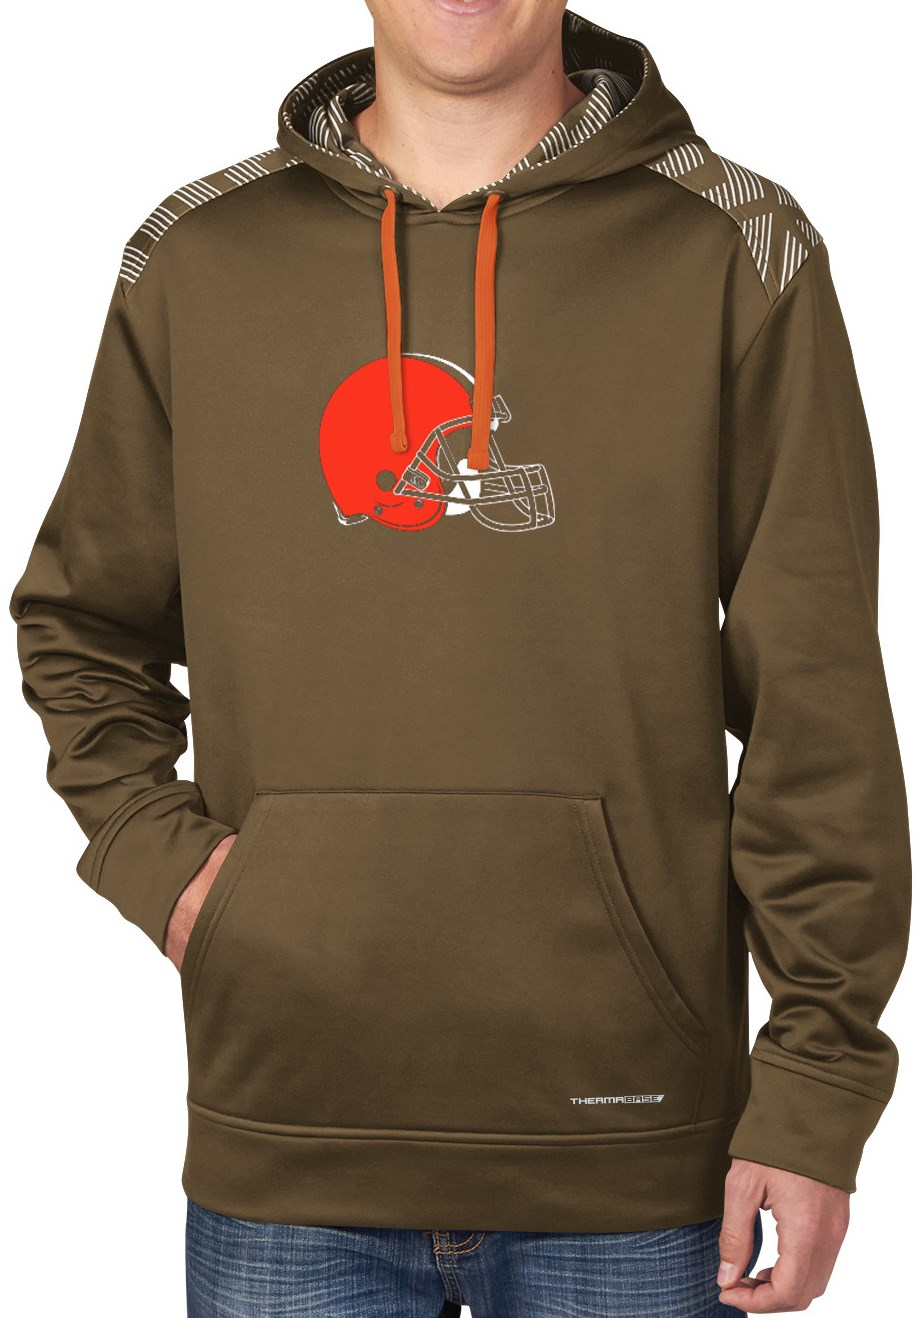 f6058599 Majestic Athletic Cleveland Browns #6 Women's Baker Mayfield Limited ...